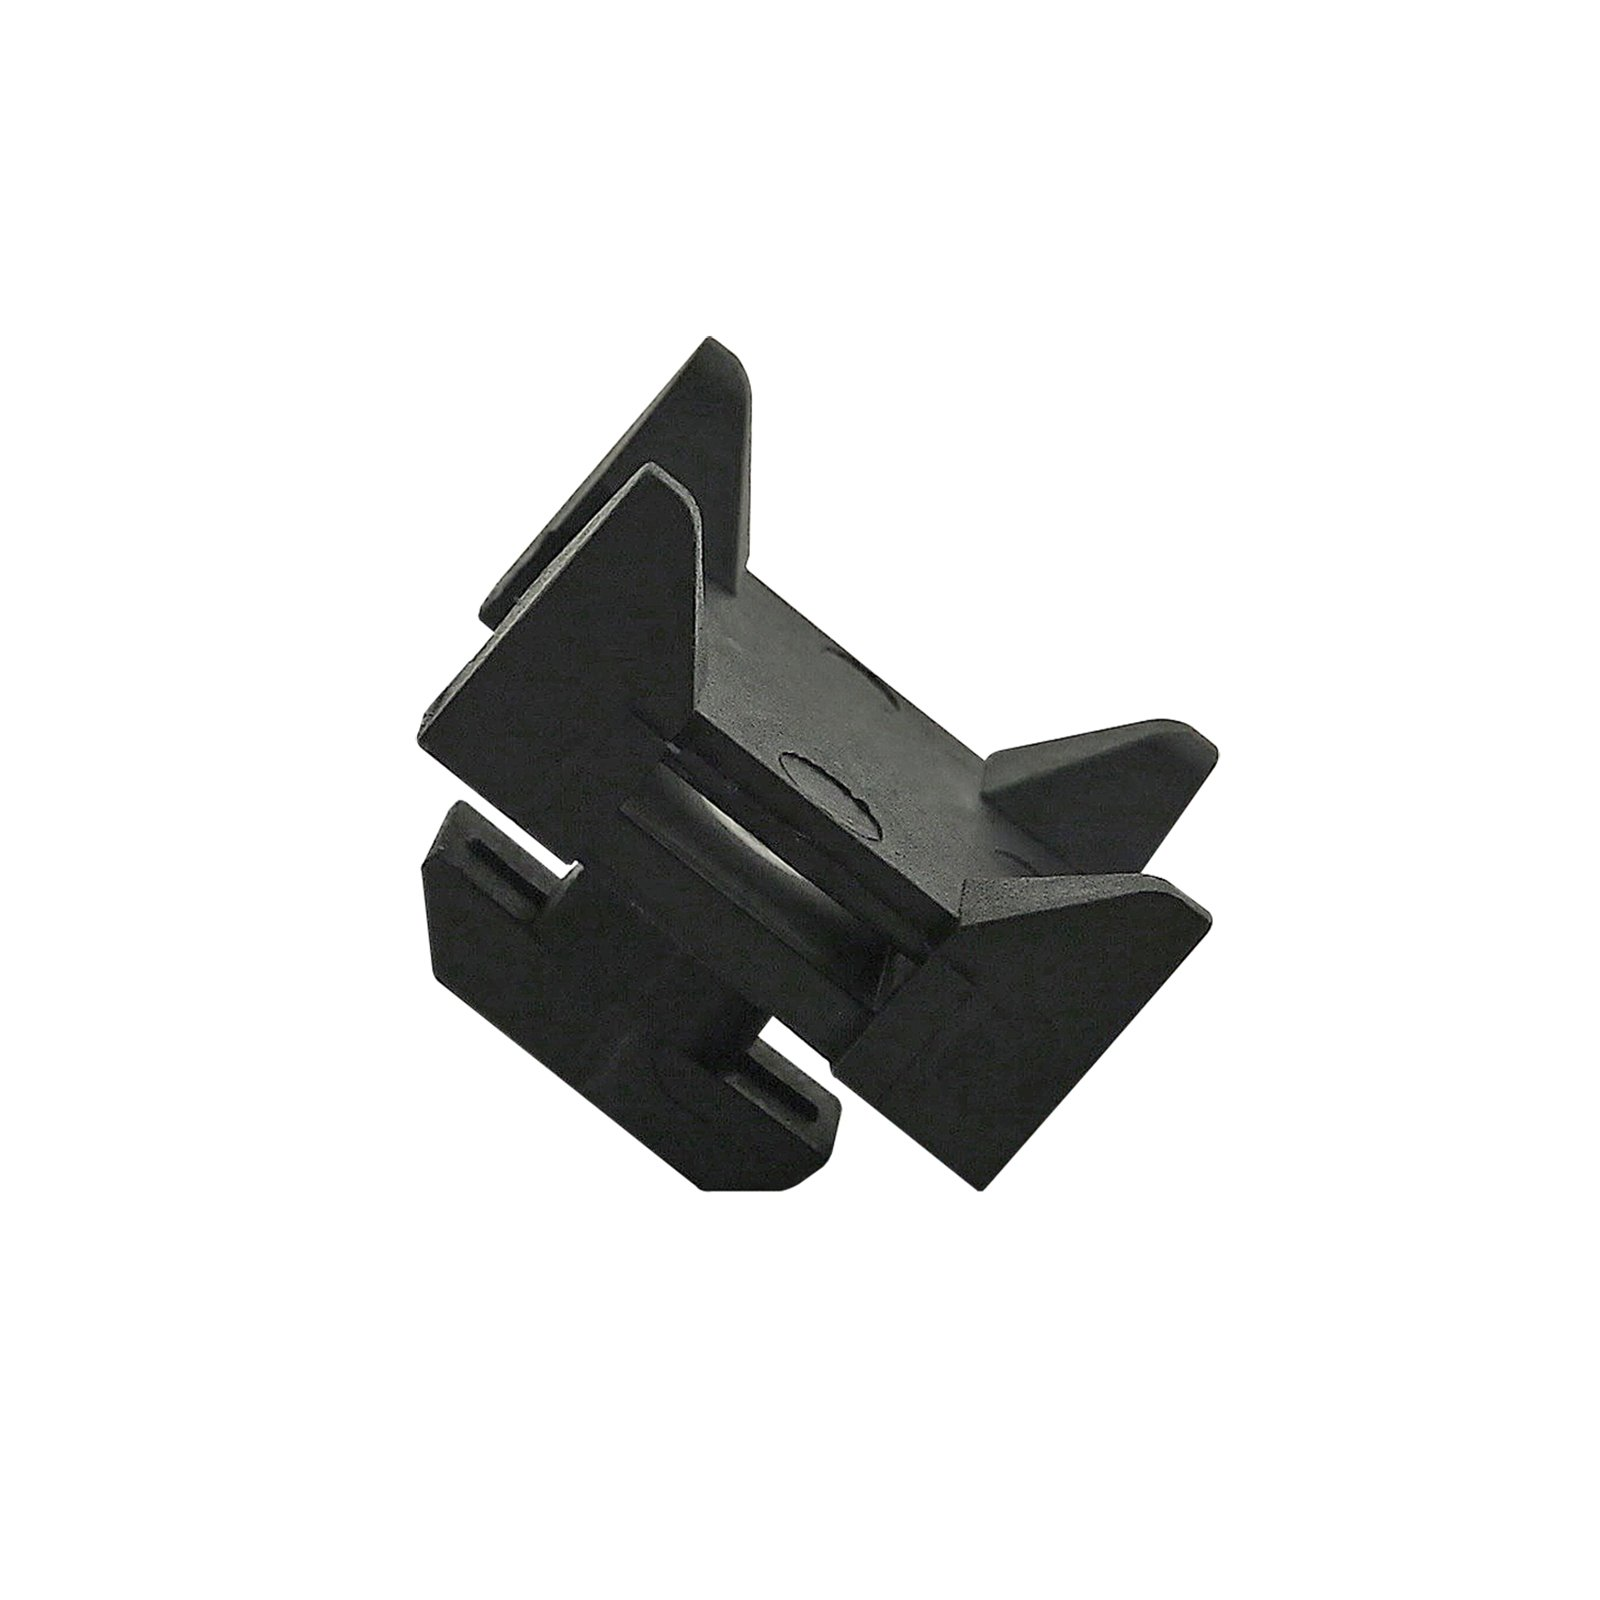 80/20 Inc., 12316, 15 and 40 Series, Nylon Cable Tie Mounting Block, 25 Pack